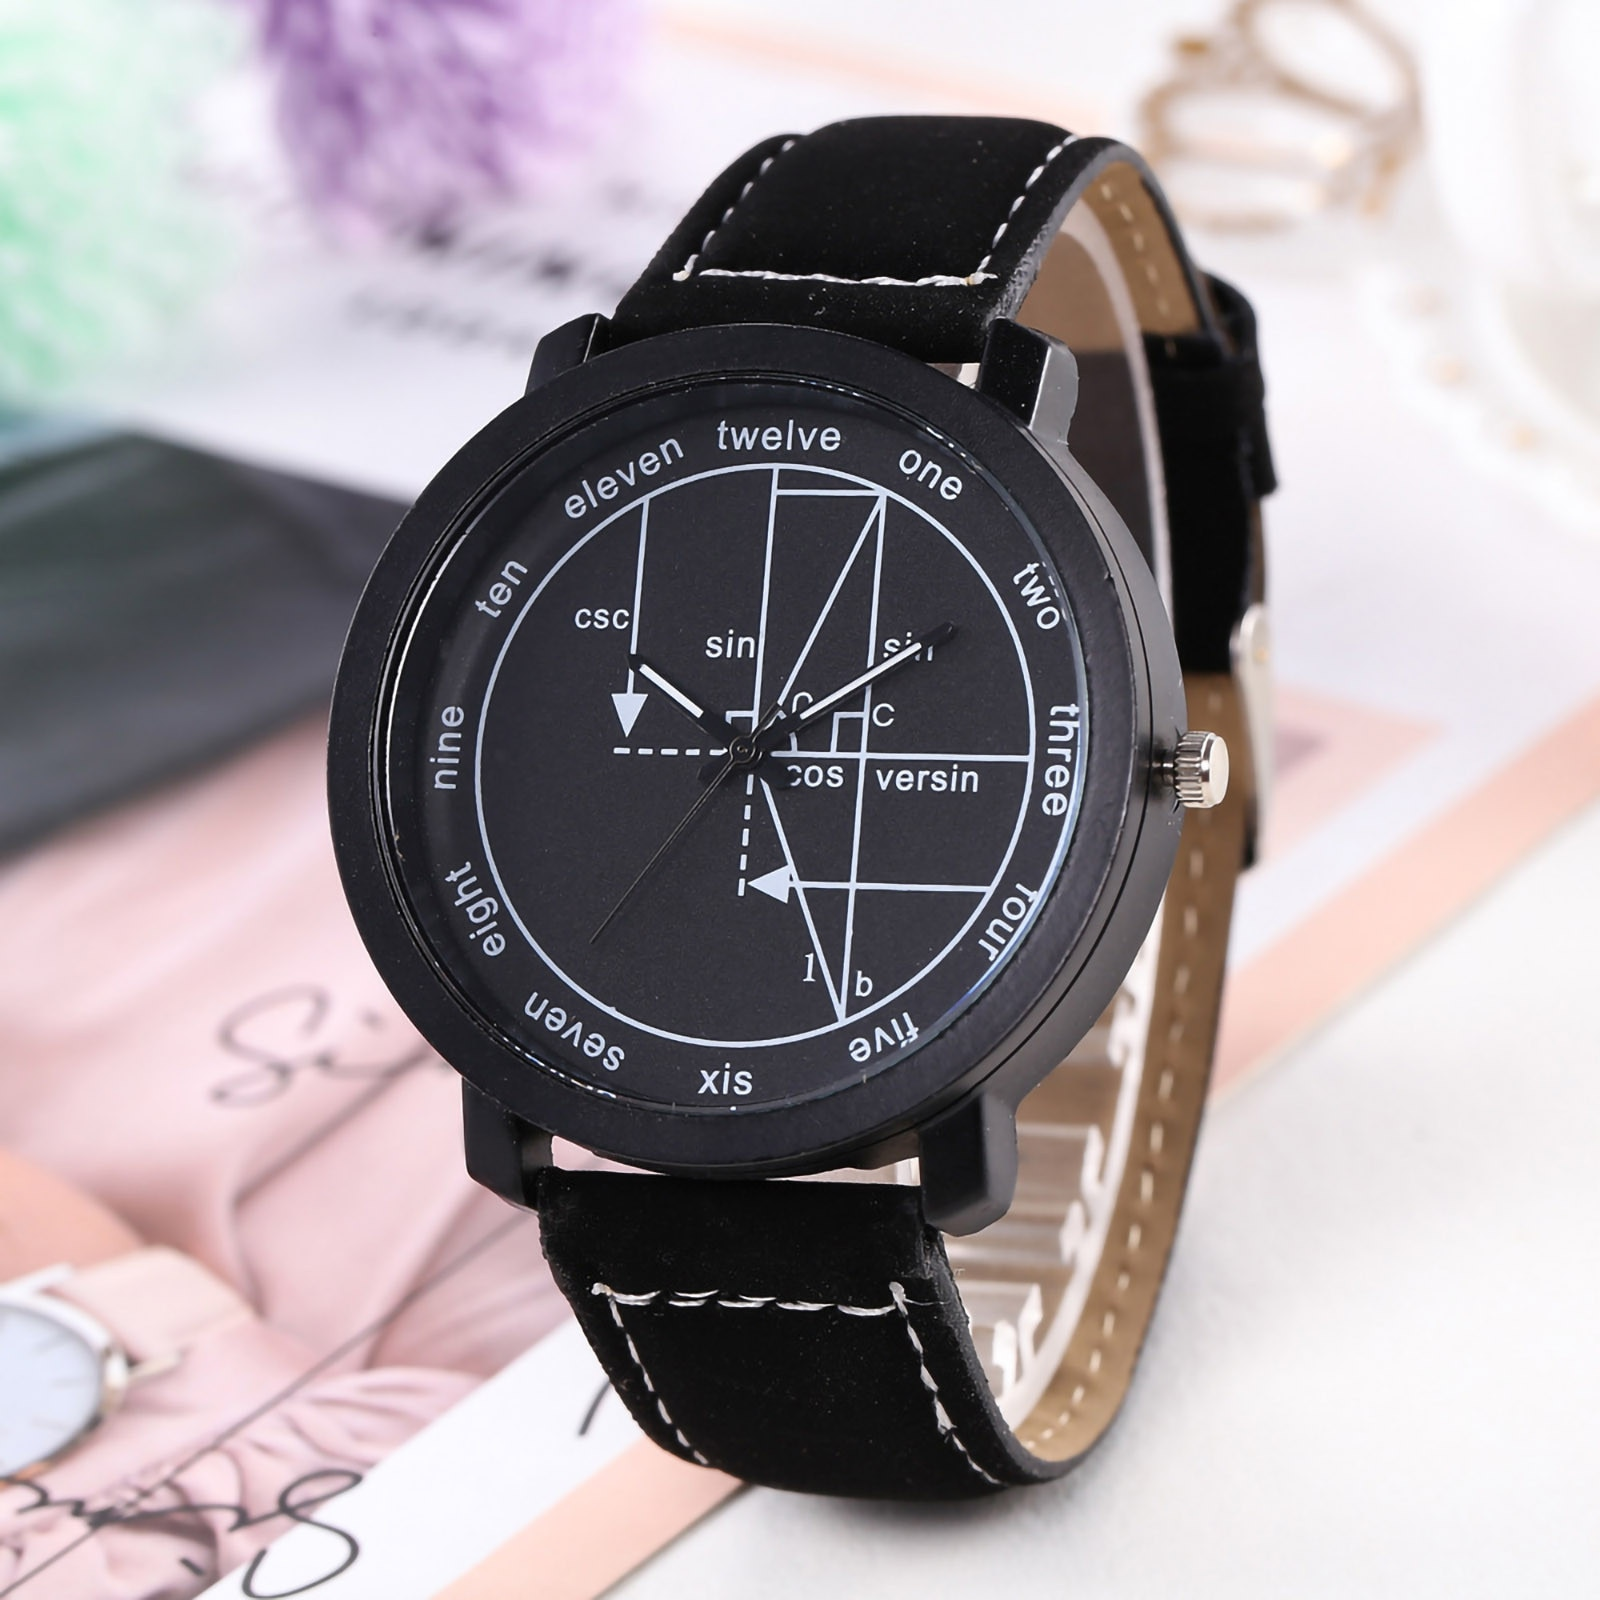 Watch For Women Scale Geometric Dial Leather Strap Men And Women Casual Fashion Ladies Quartz Watch